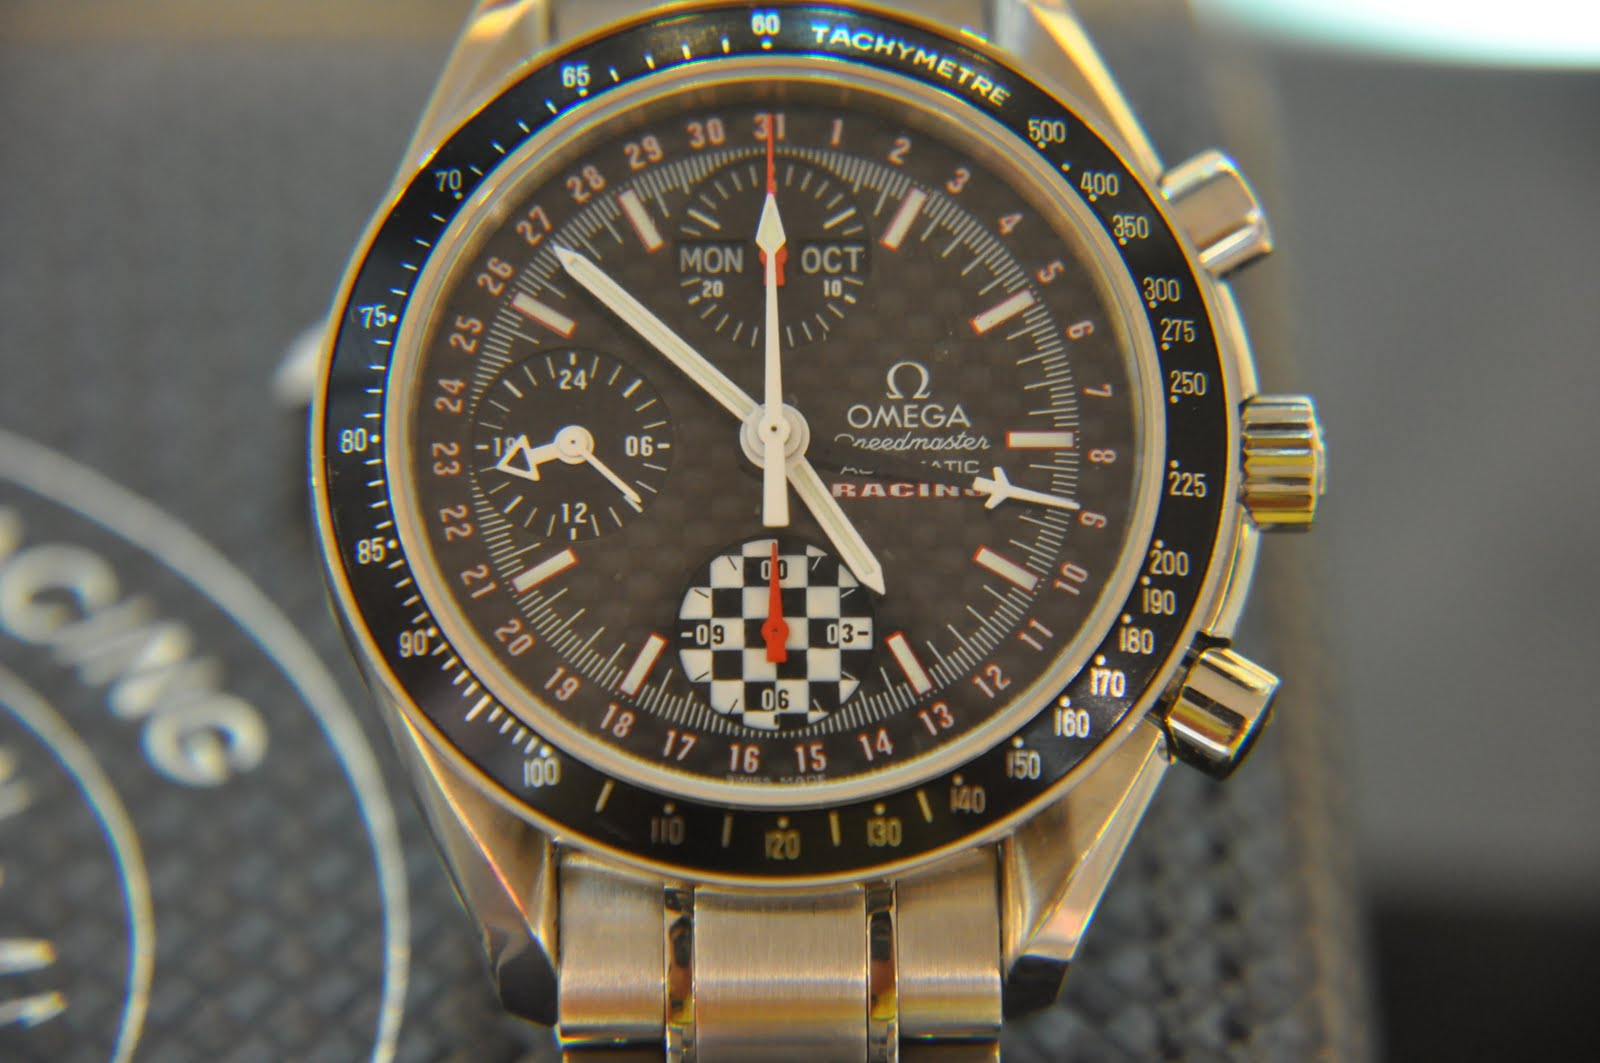 LT Watch Gallery: 230. PREOWNED OMEGA SPEEDMASTER RACING ...